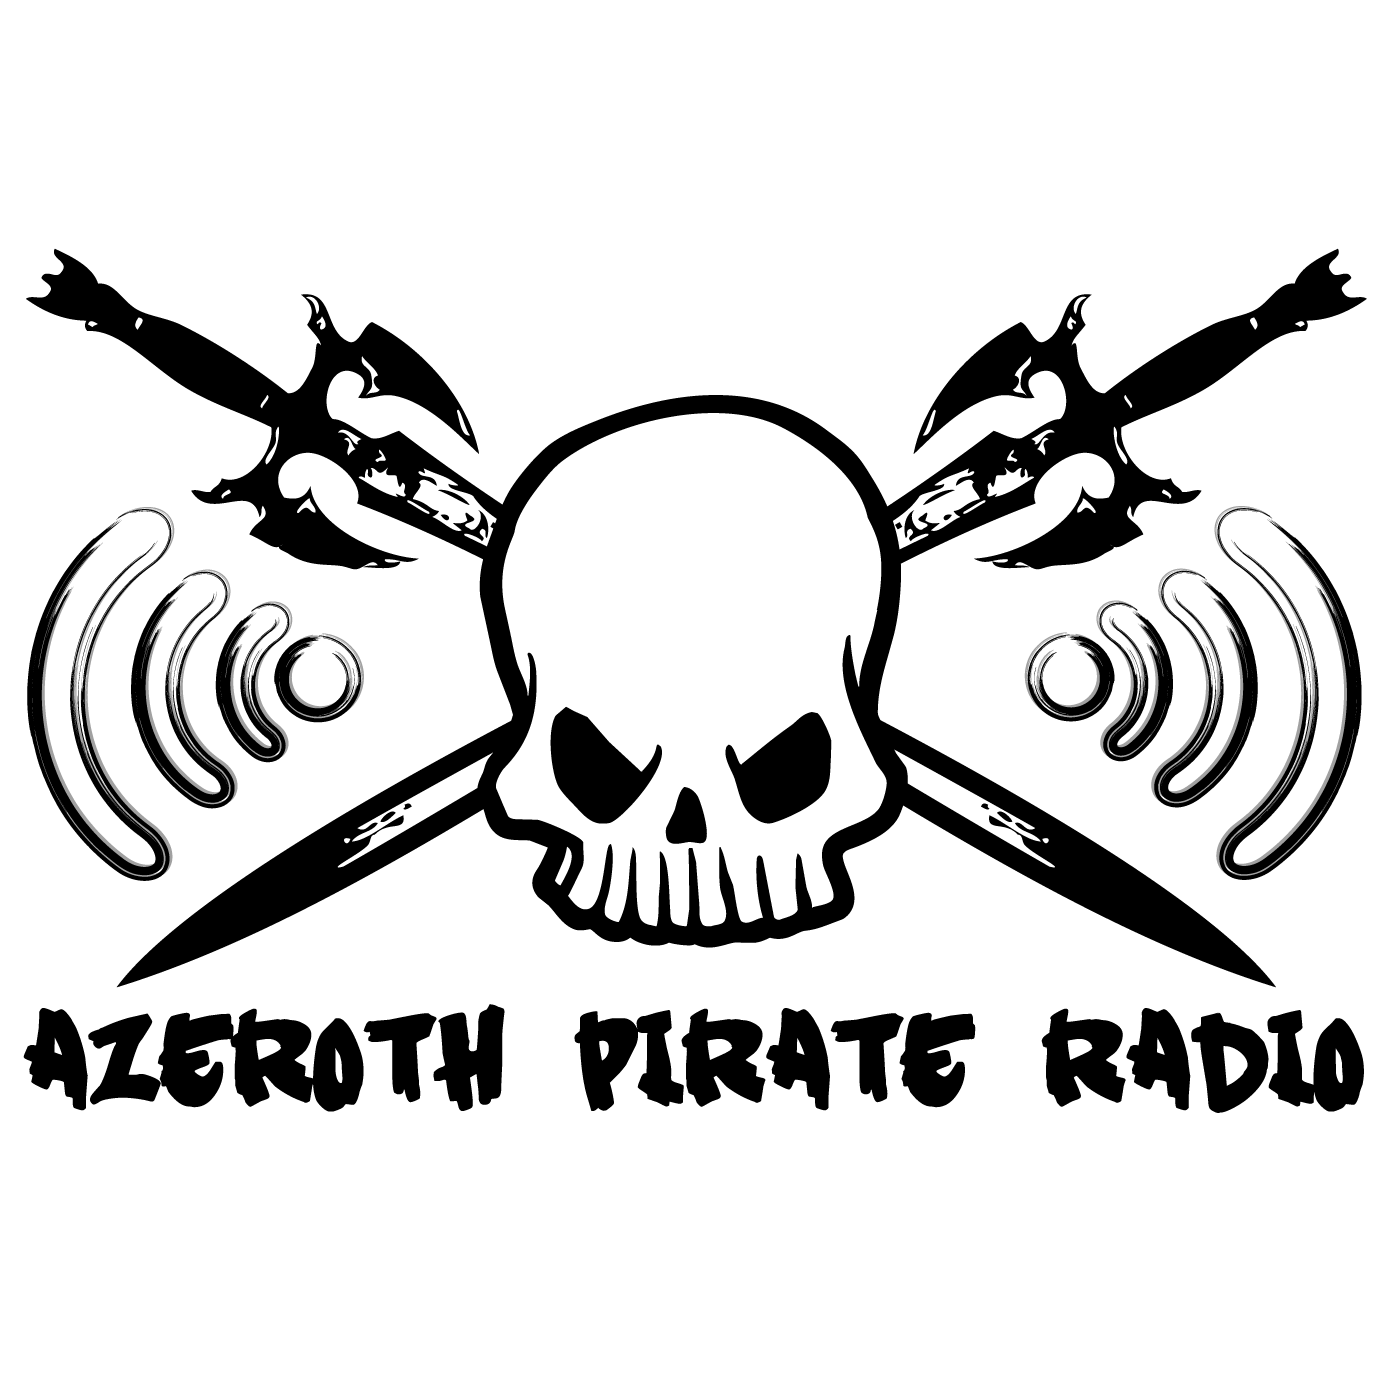 Azeroth Pirate Radio (podcast)